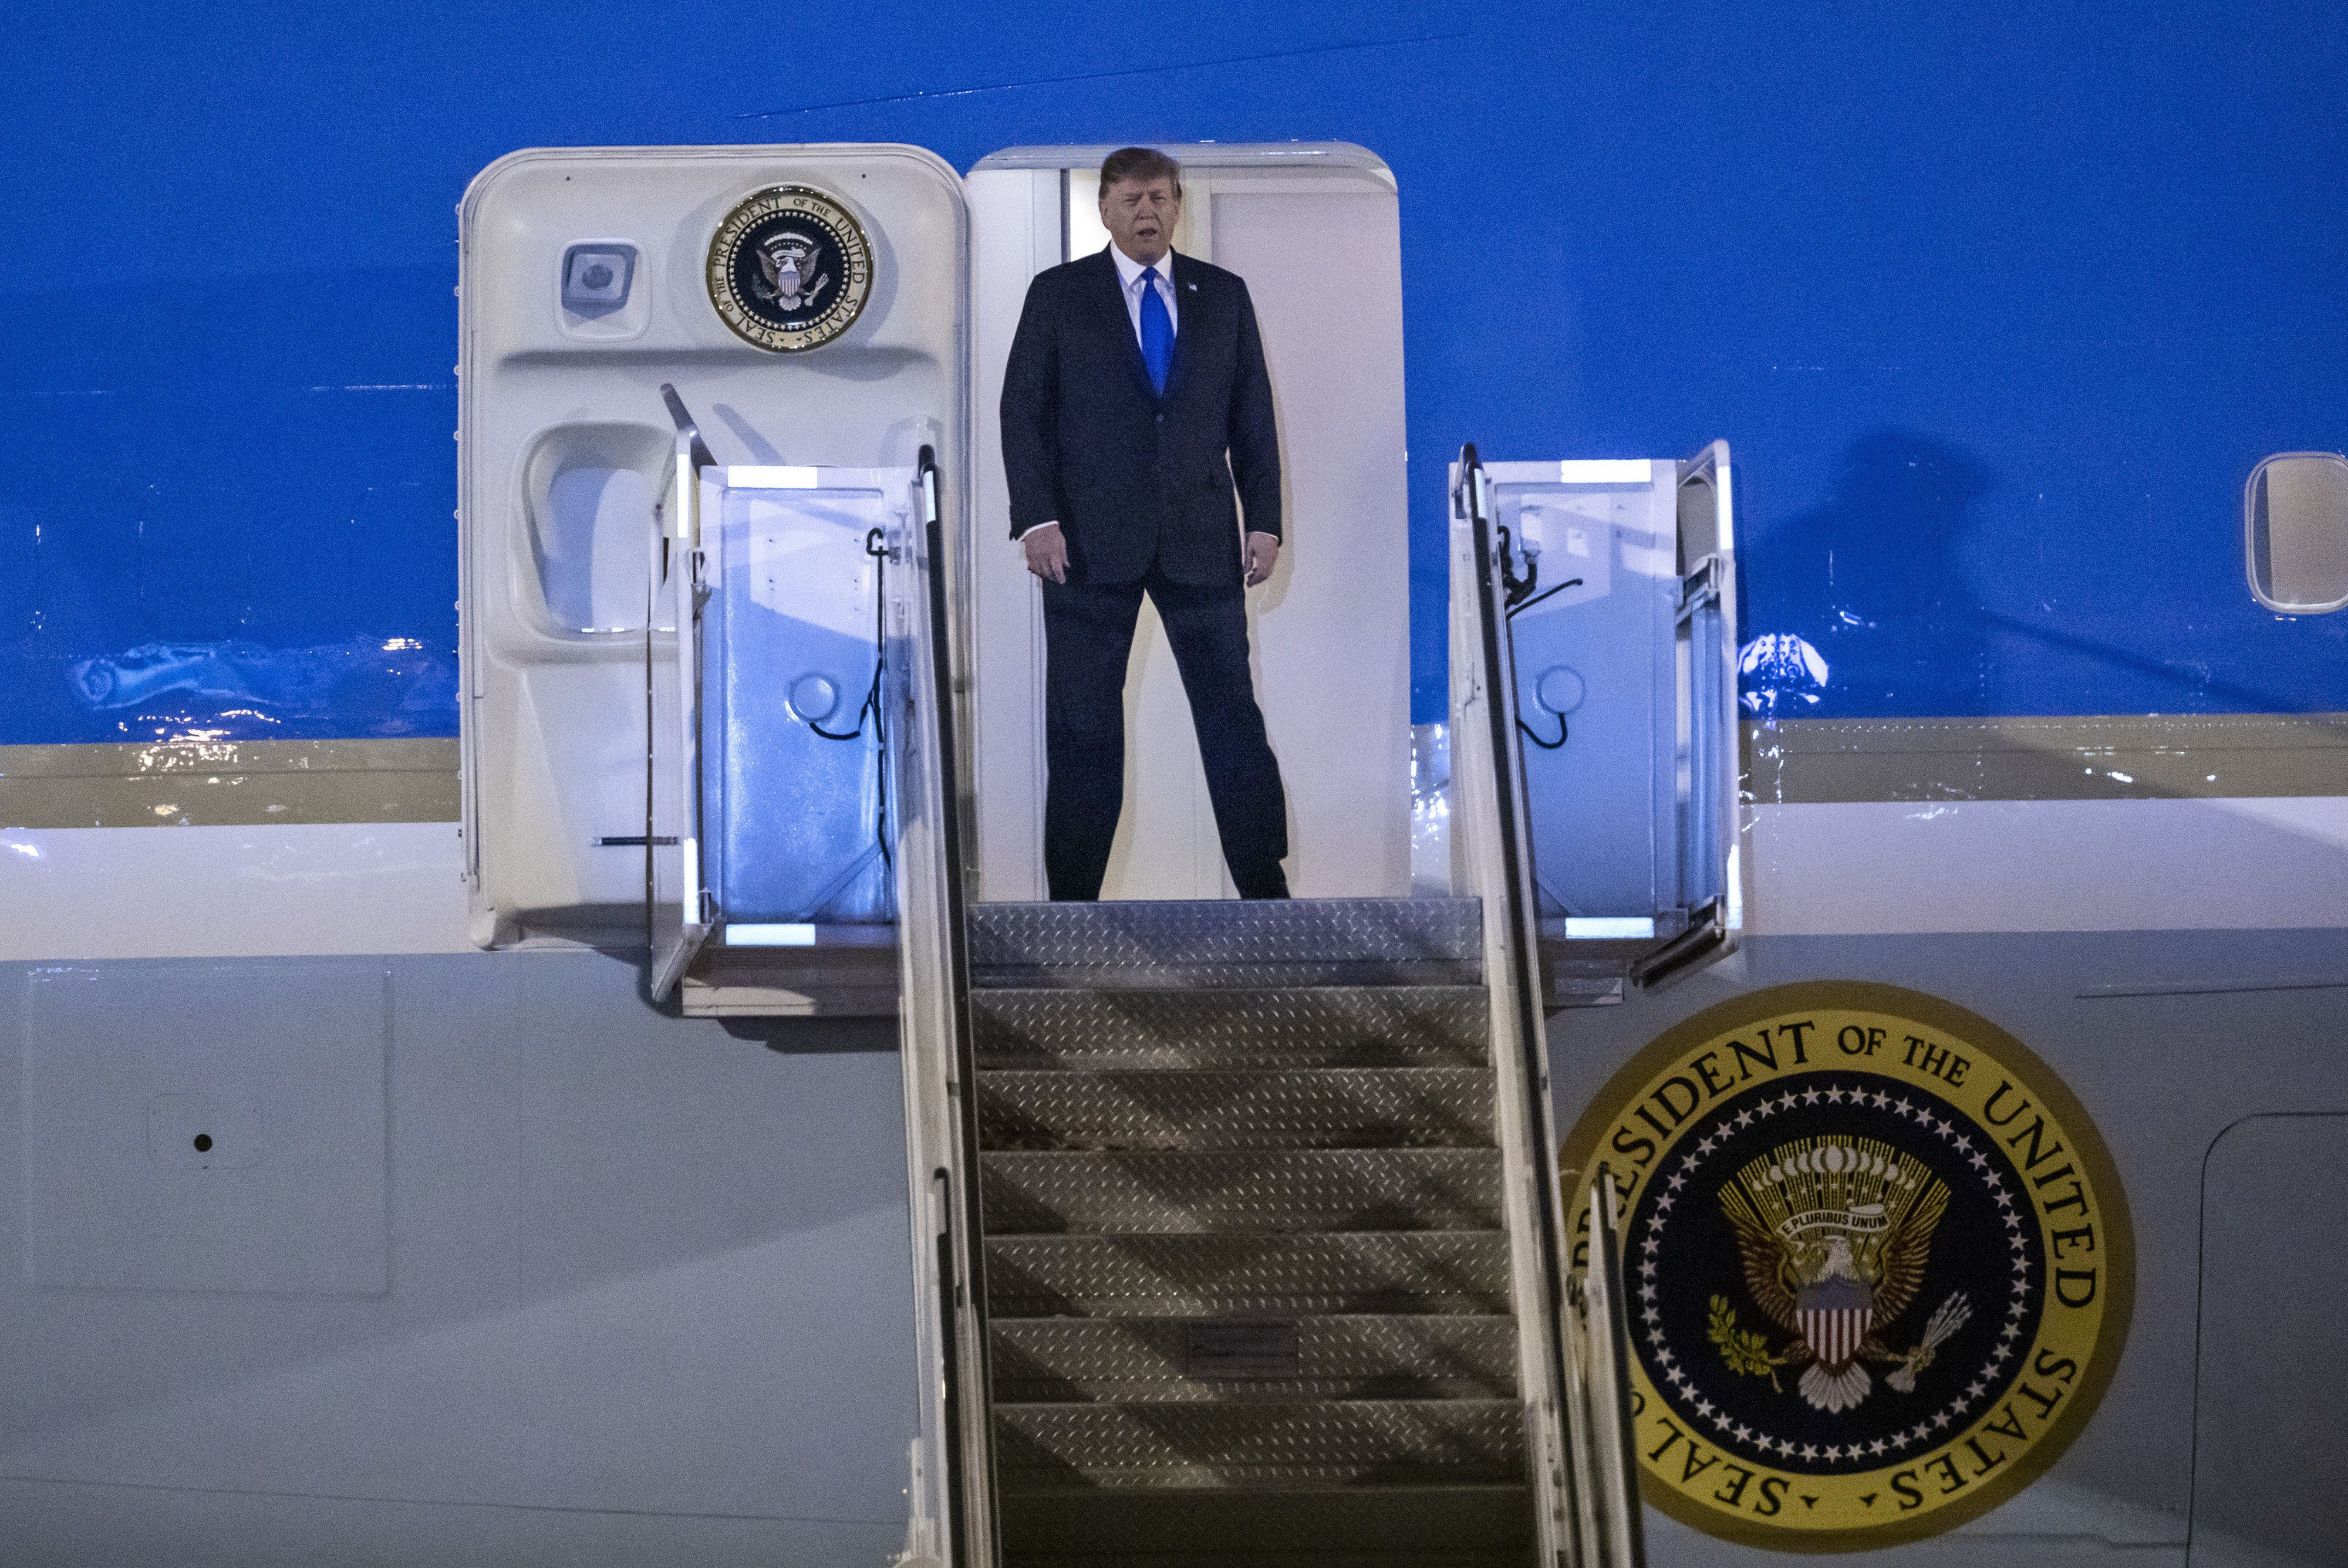 U.S. President Donald Trump disembarks from Air Force One after arriving at Noi Bai International Airport in Hanoi, Vietnam, on Tuesday, Feb. 26, 2019. The slapdash nature of Trumps second summit with Kim Jong Un was exposed on Tuesday, as American journalists were abruptly evicted from a Hanoi hotel housing the North Korean leader and key details of the meeting remained a mystery. Photographer: Justin Chin/Bloomberg via Getty Images